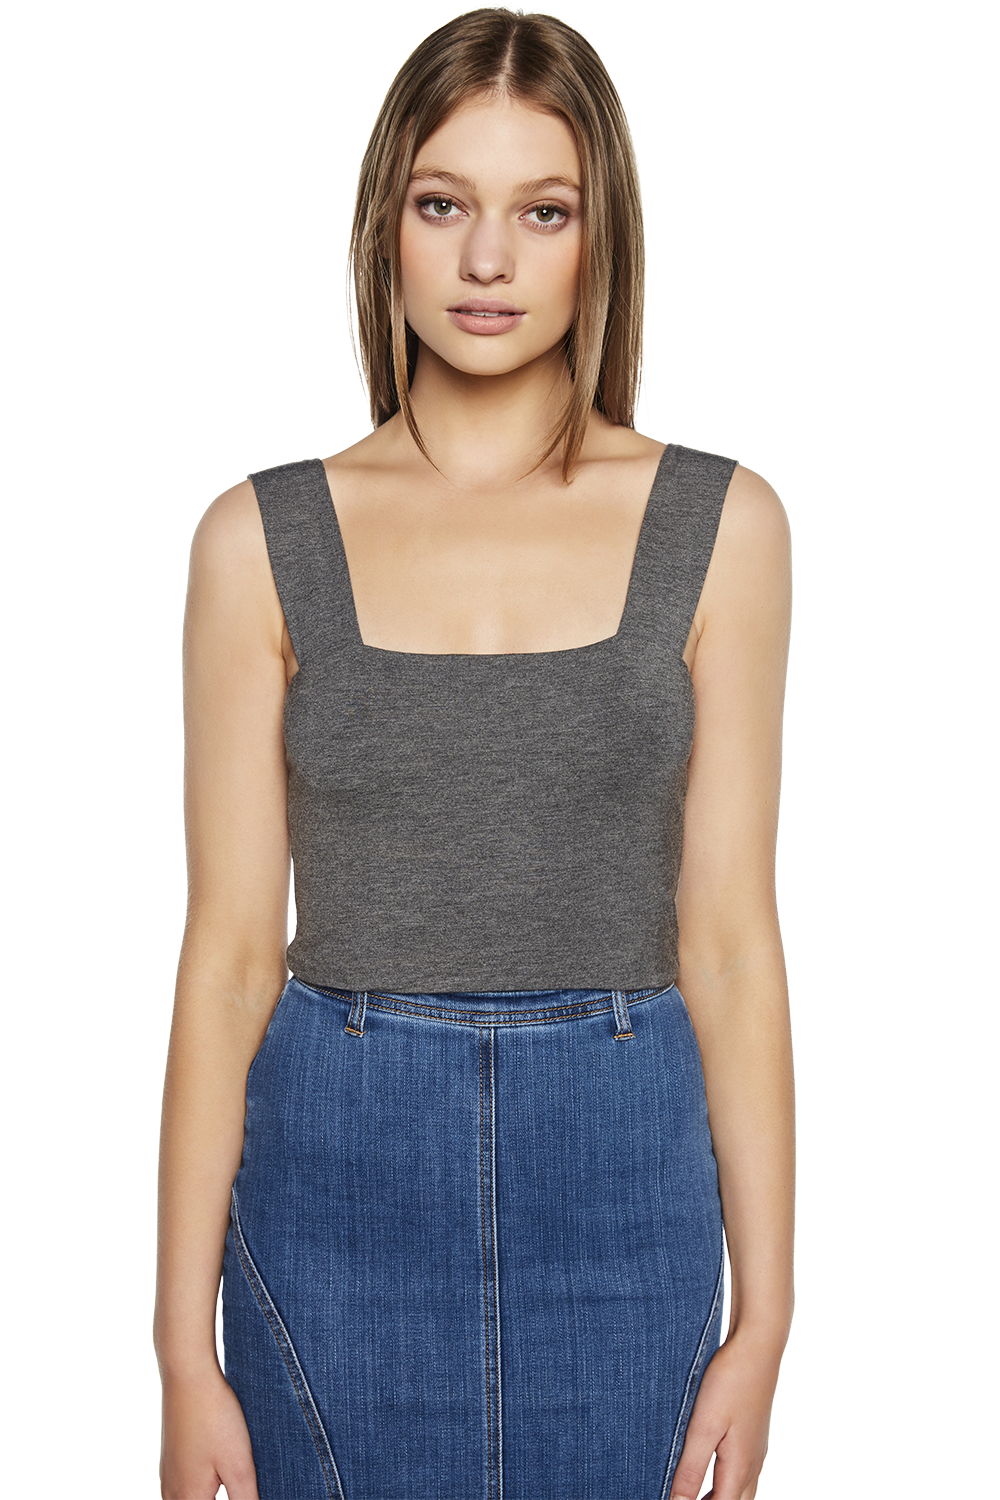 MIMI CROP TOP in colour FROST GRAY